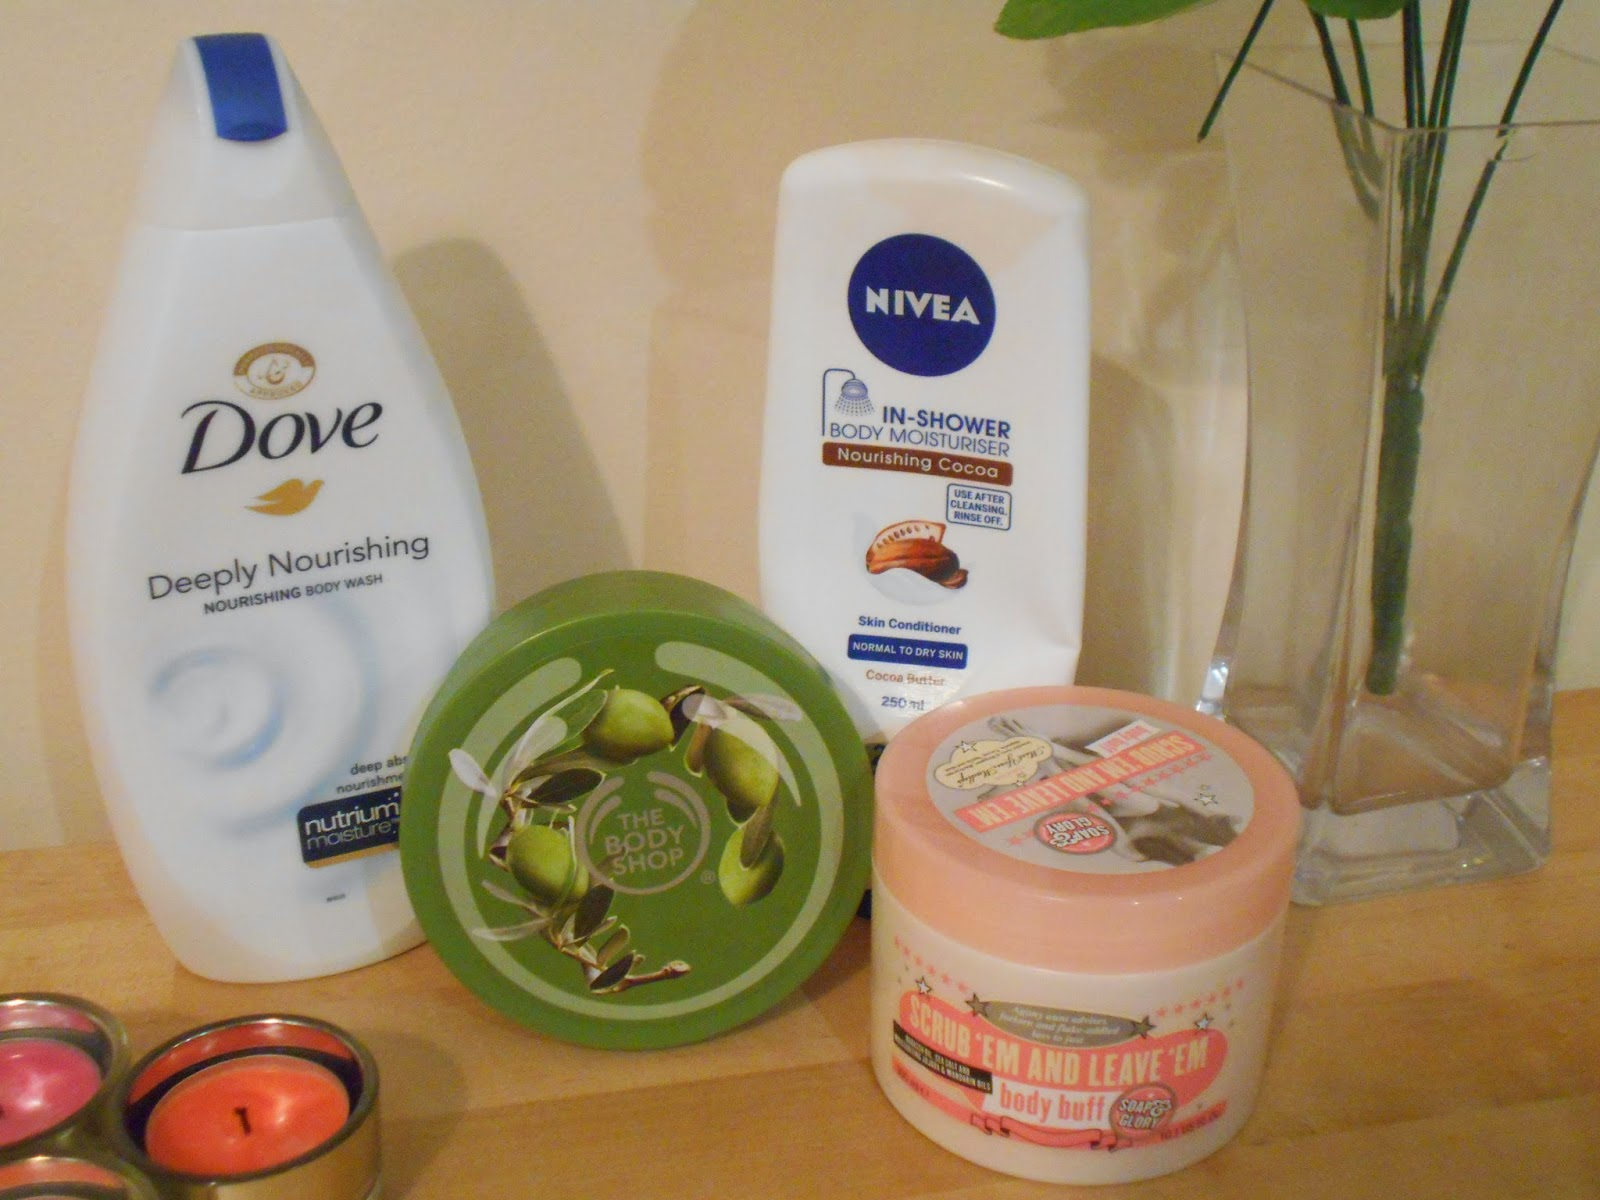 THE BATTLE FOR SMOOTH SKIN